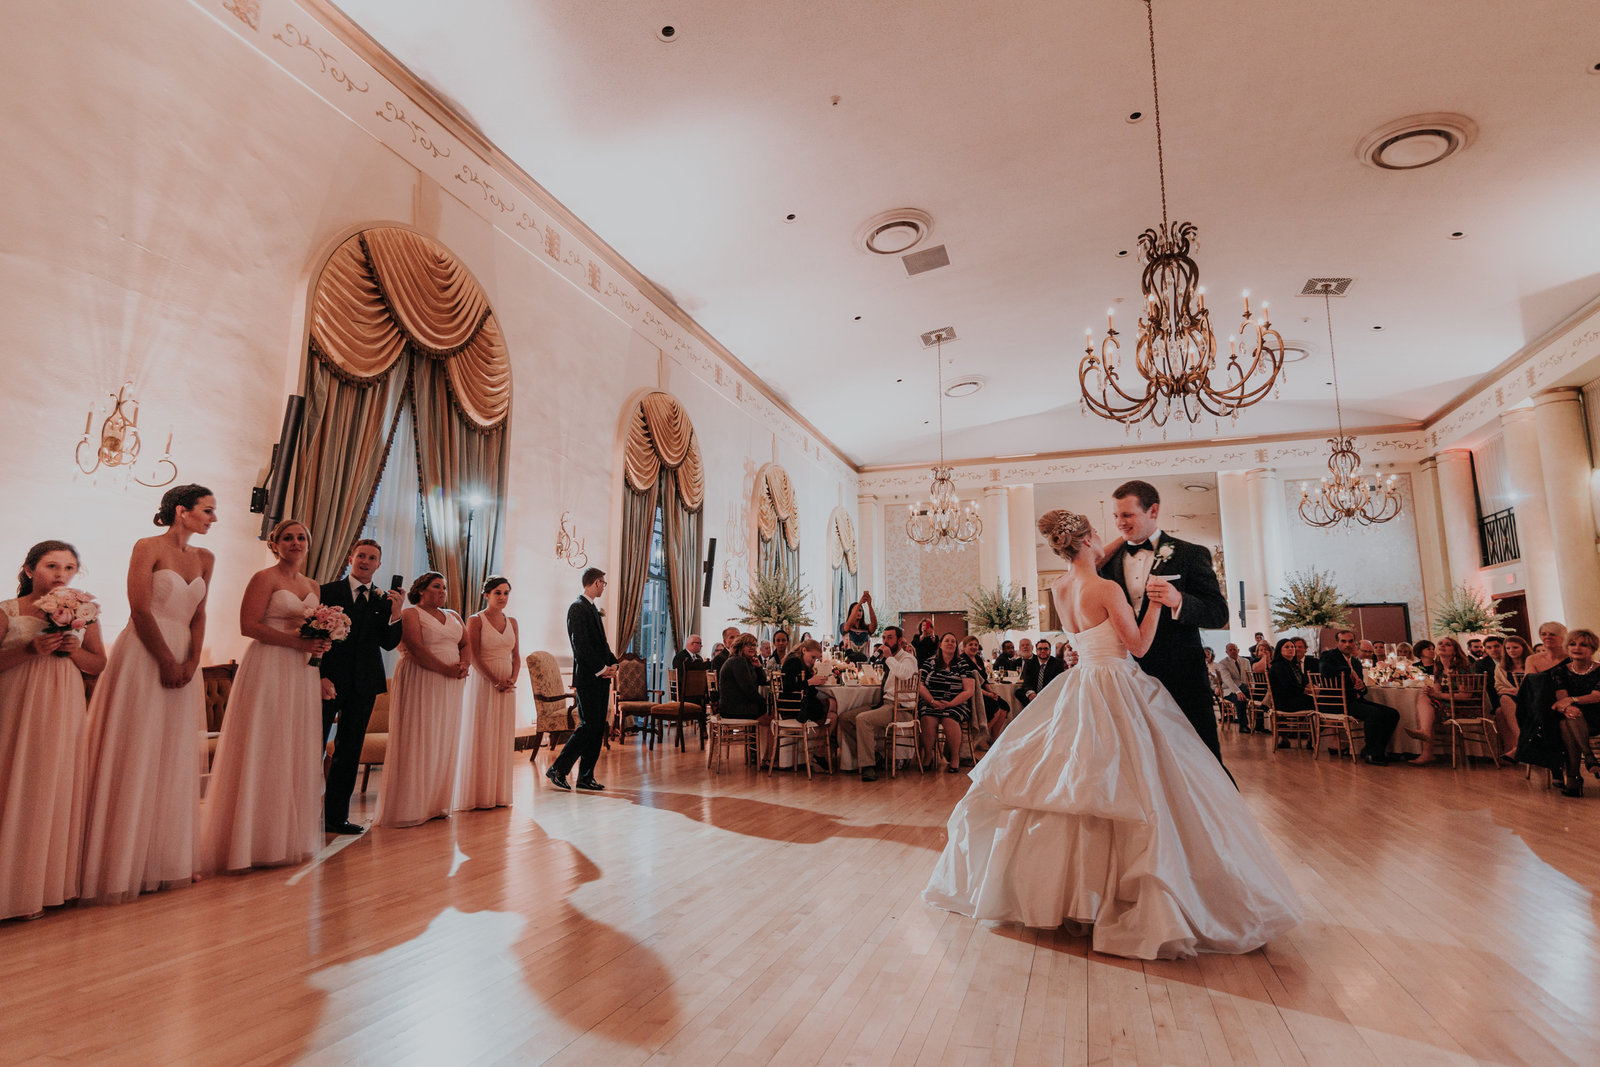 dupont country club first dance wedding